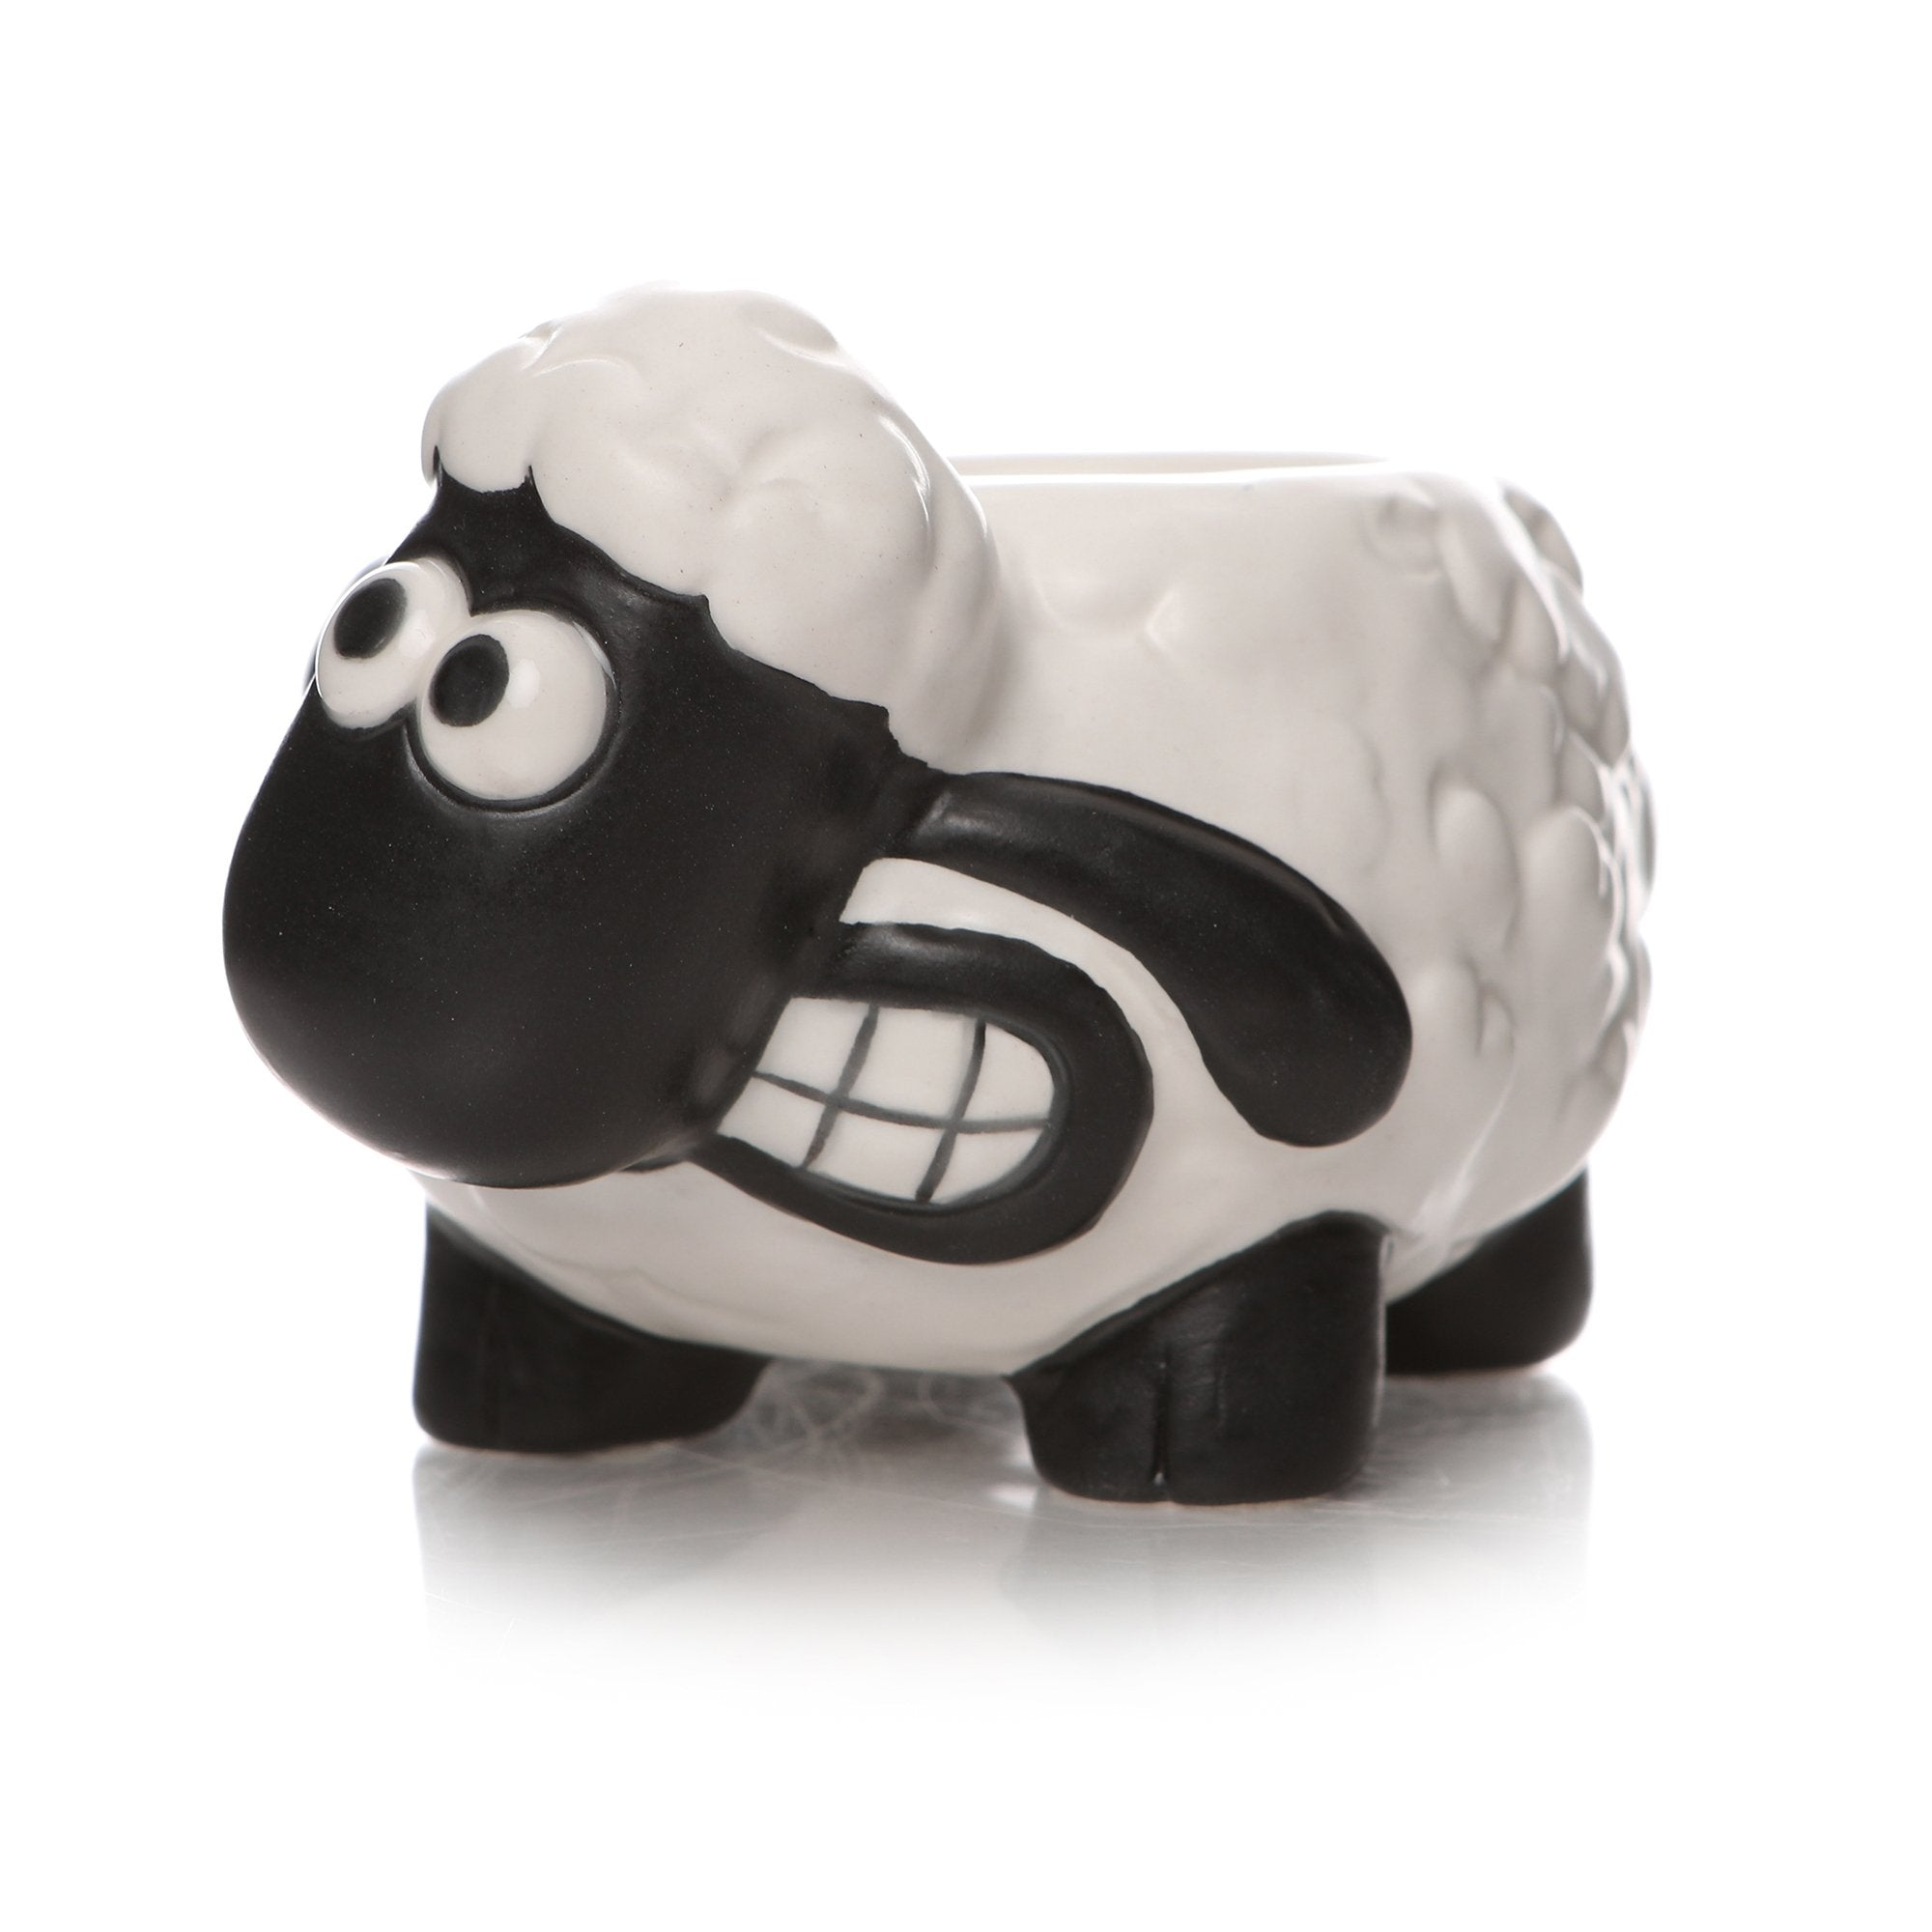 Aardman Shaun the Sheep Egg Cup - Half Moon Bay US